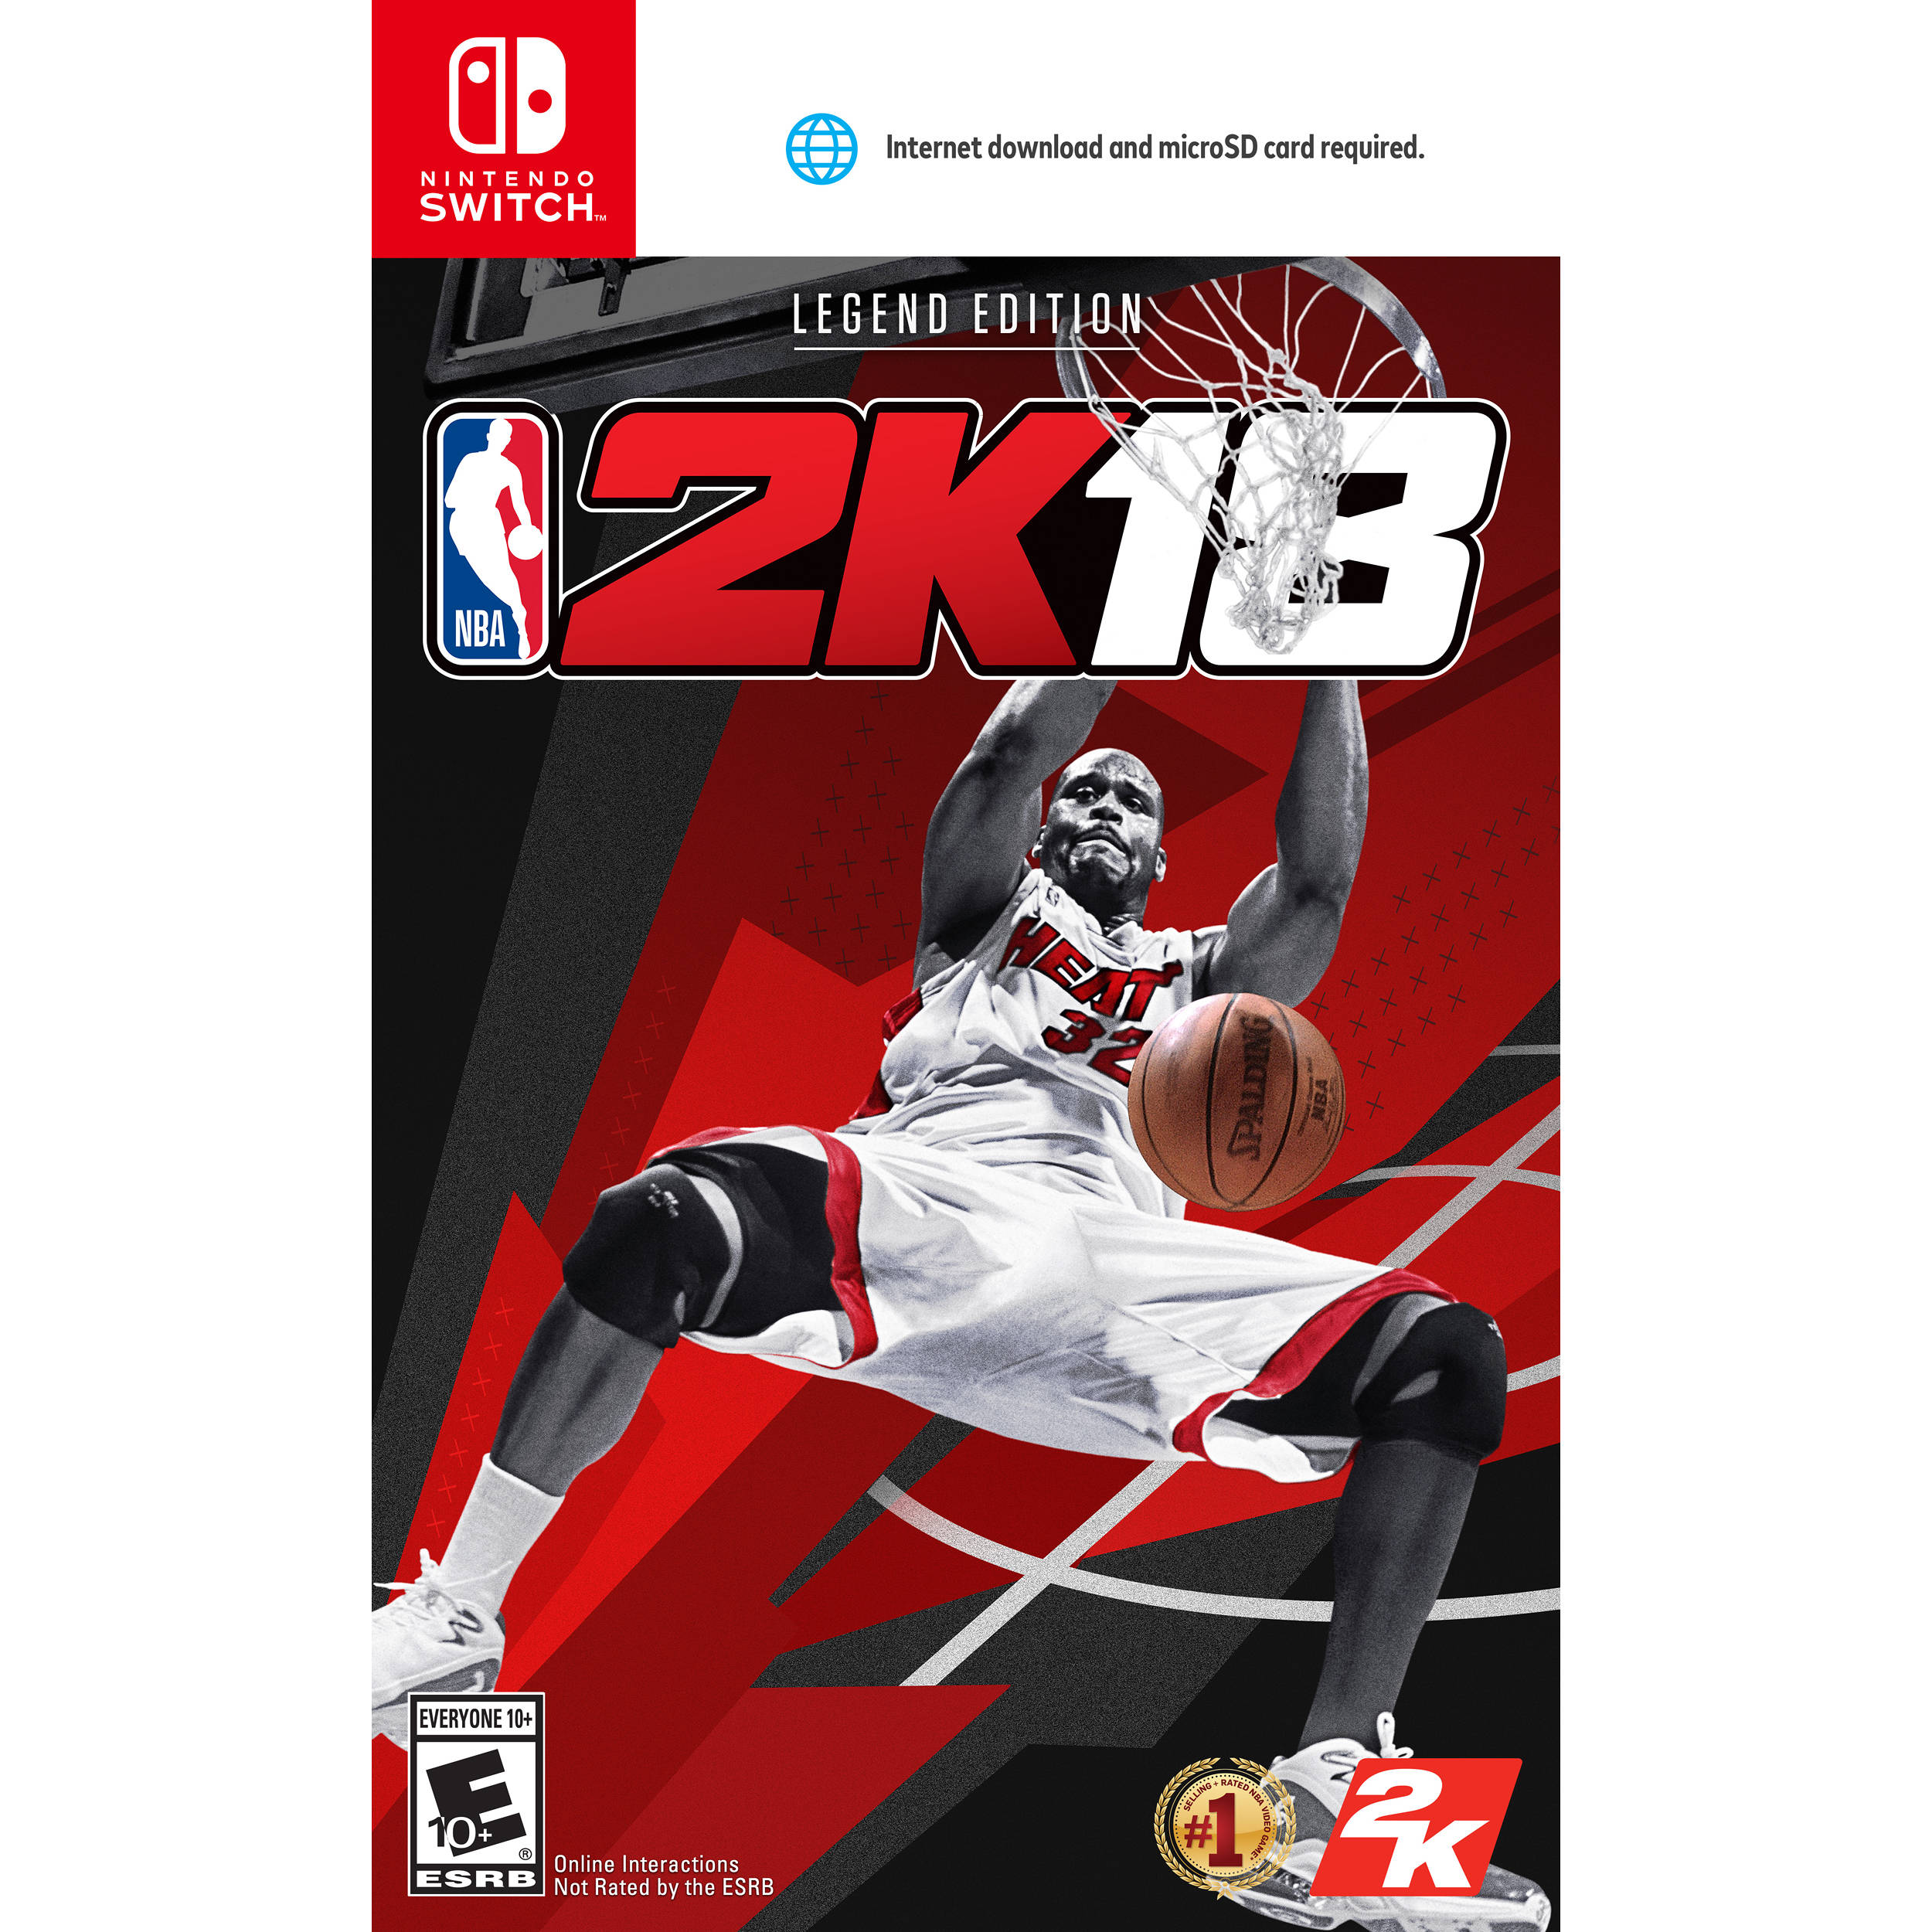 Nba 2k face scan switch   How to Scan Your Face in NBA 2K17  2020-03-03